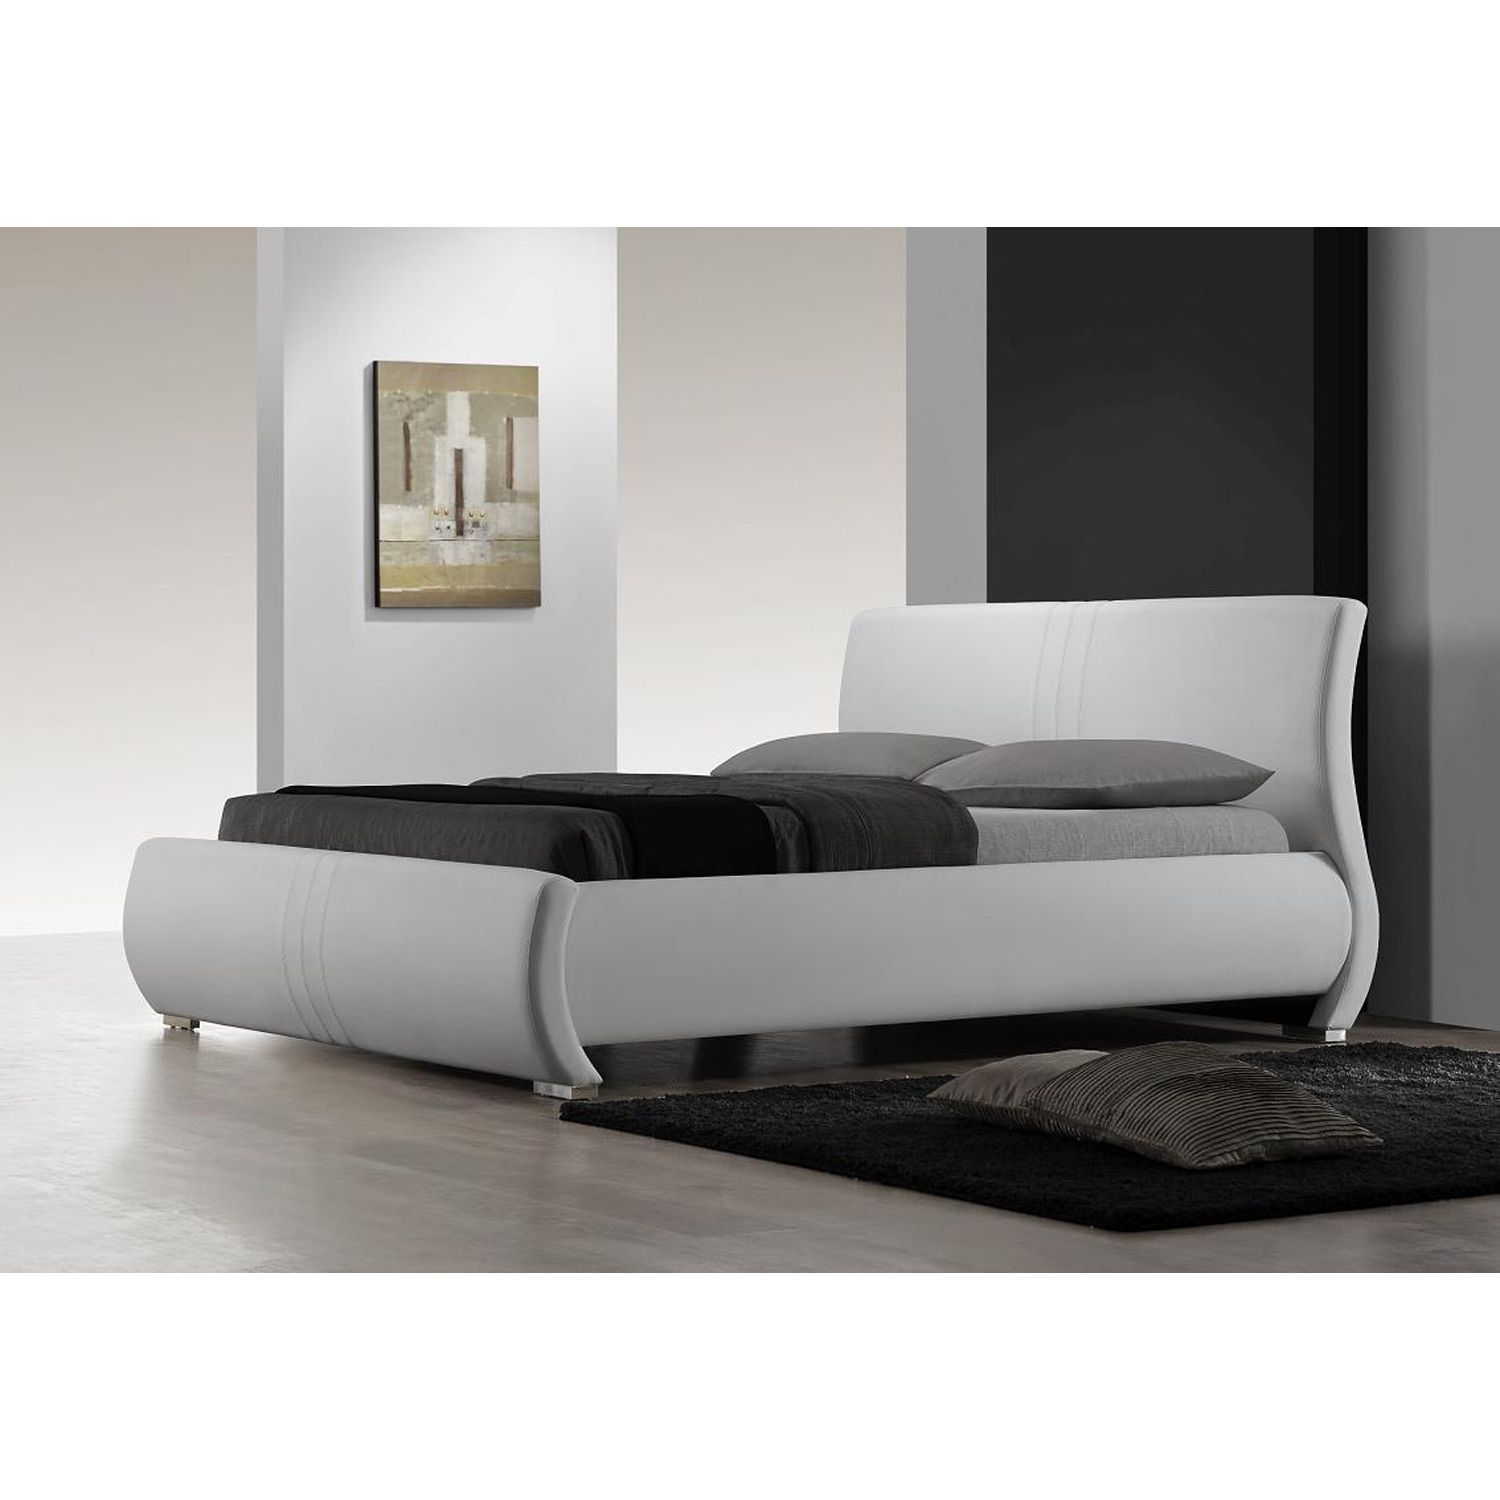 King size Contemporary White Faux Leather Platform Bed